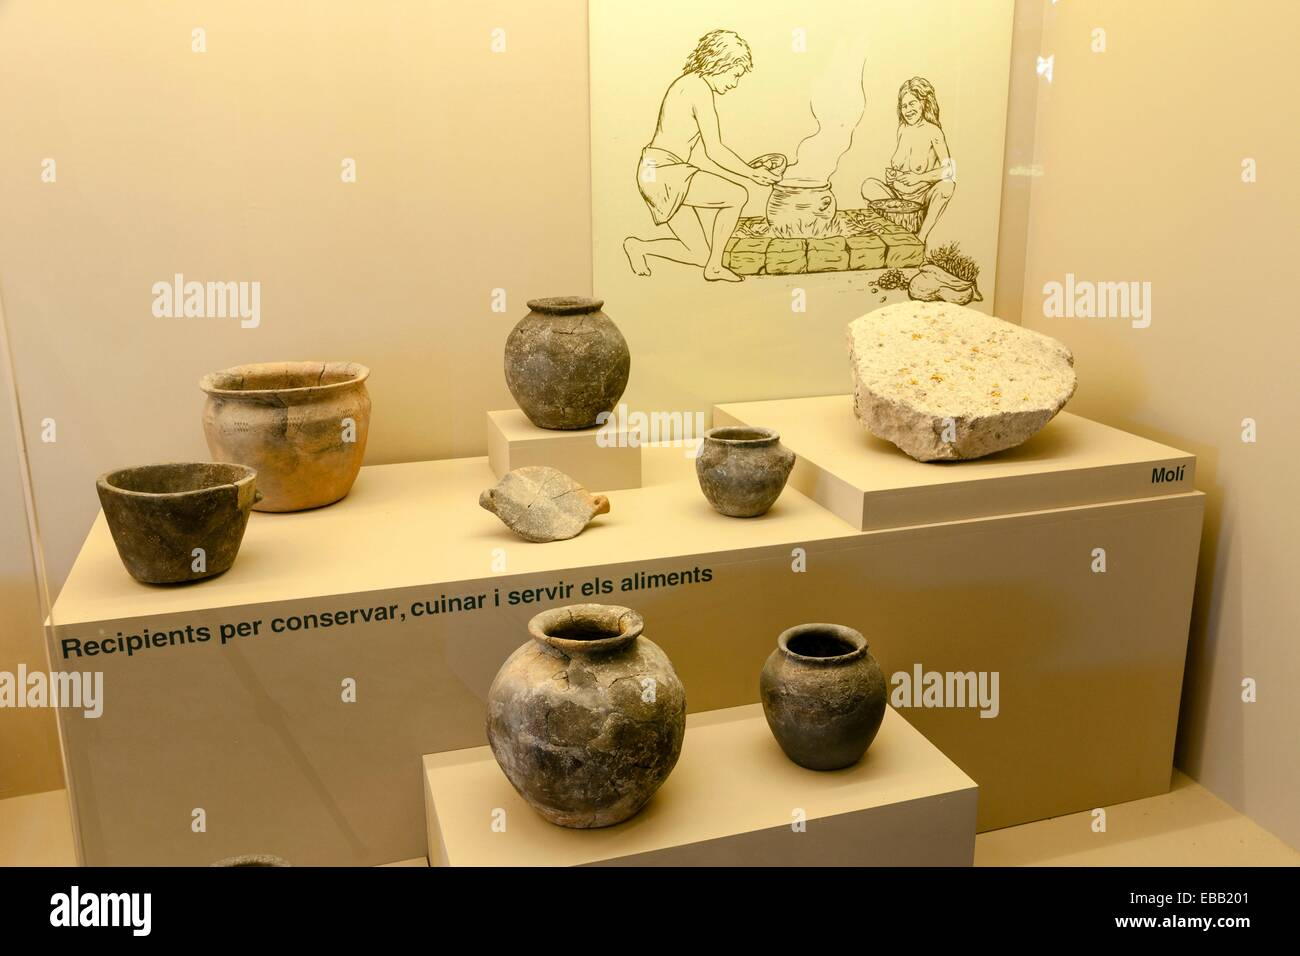 123 1300 archaeology Balearic Islands Bronze Age c color image container cooking cultural dining district Es Pla - Stock Image